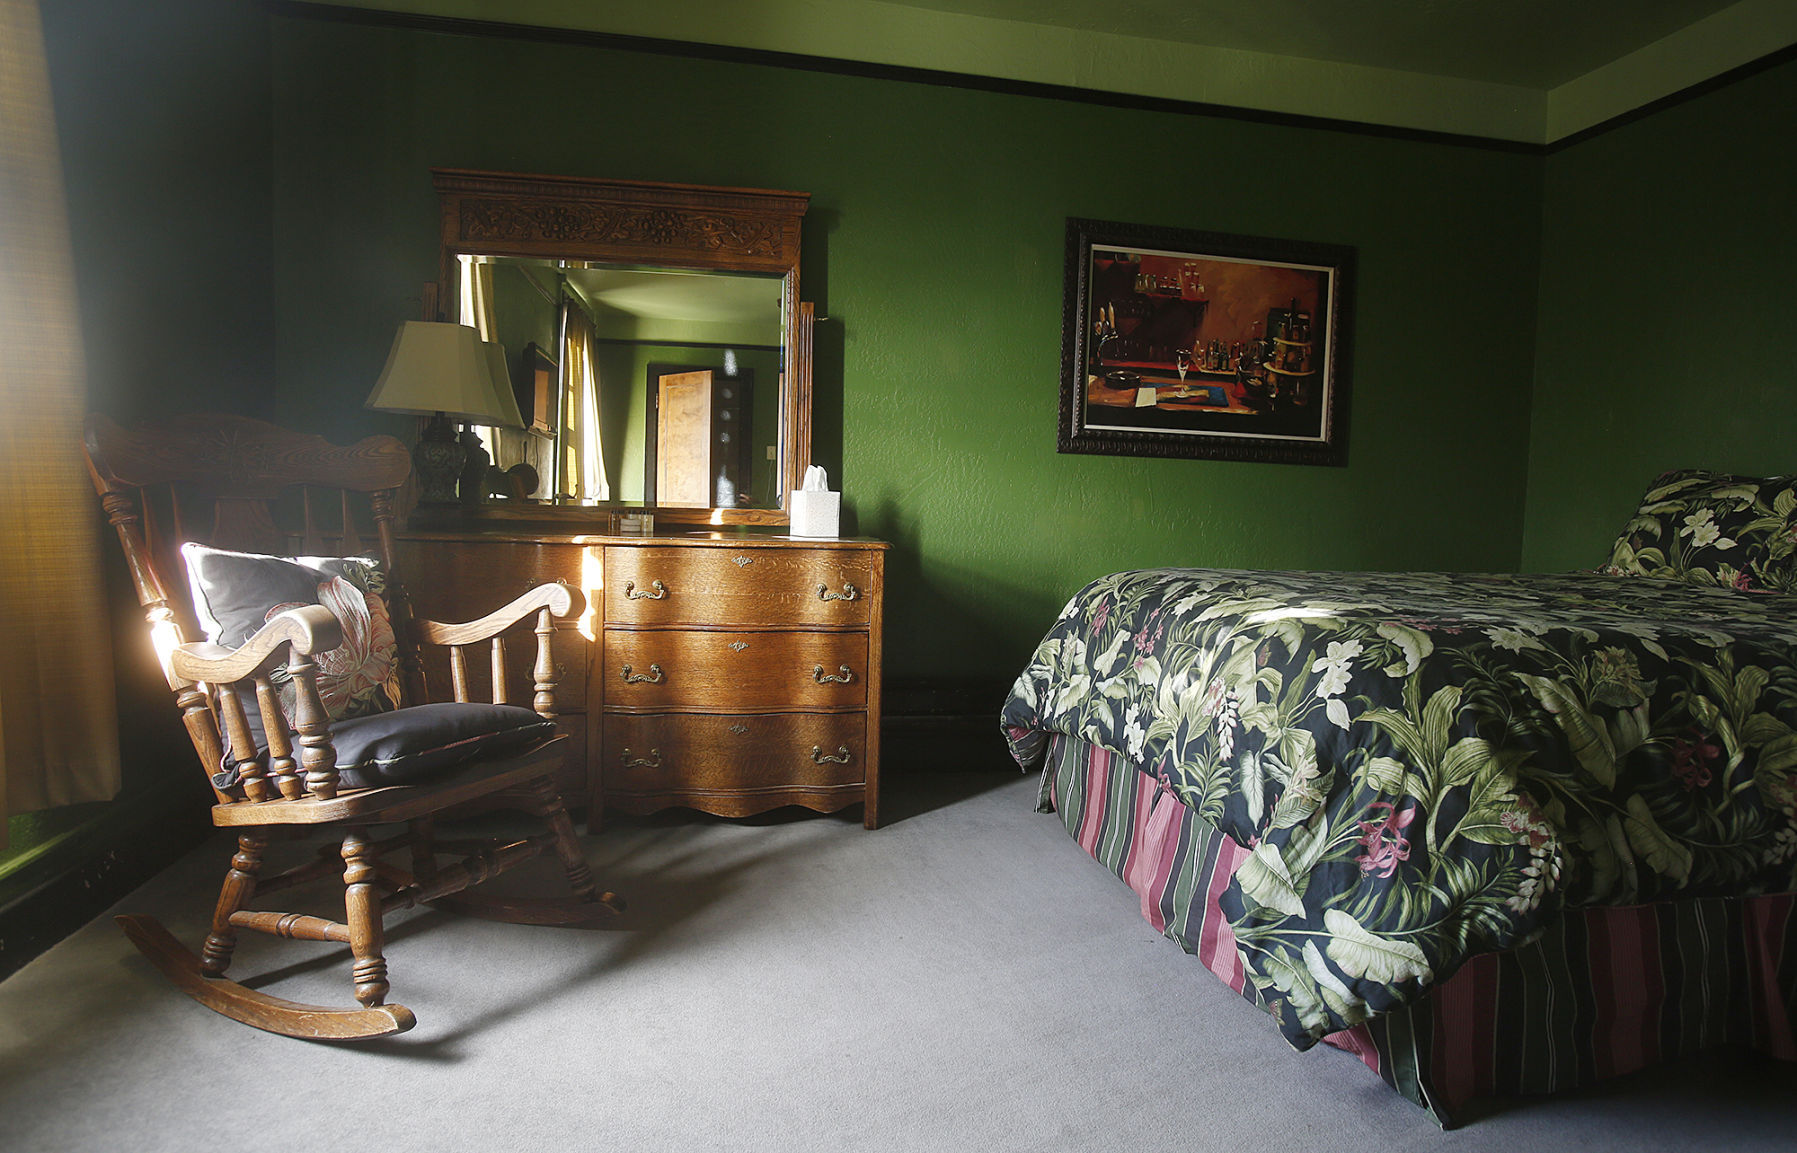 Haunted Flagstaff: Hotel Monte Vista